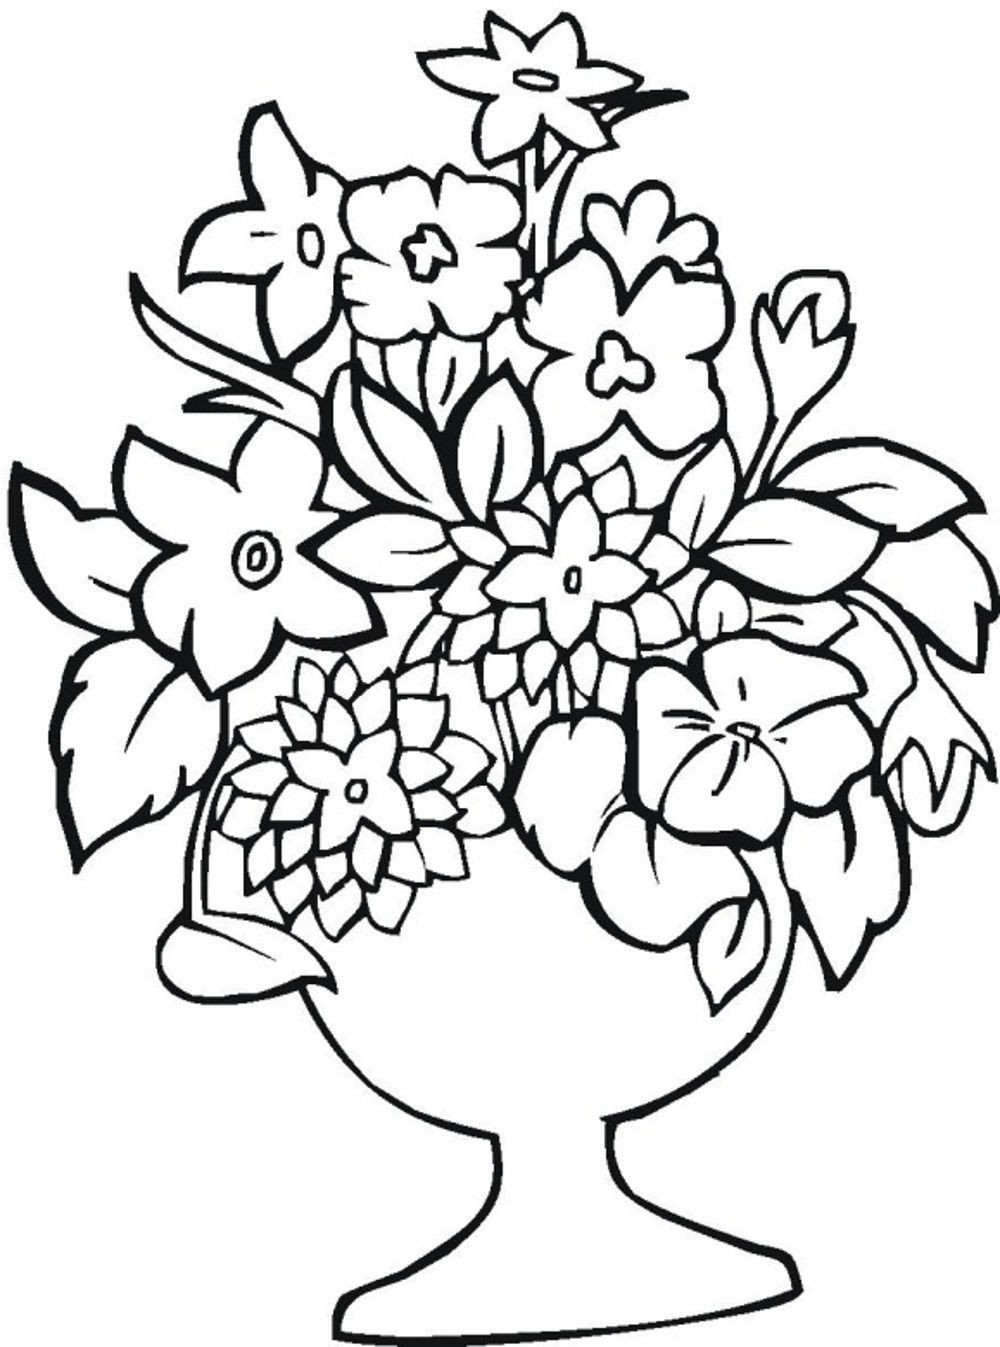 coloring flower pages - print download some common variations of the flower